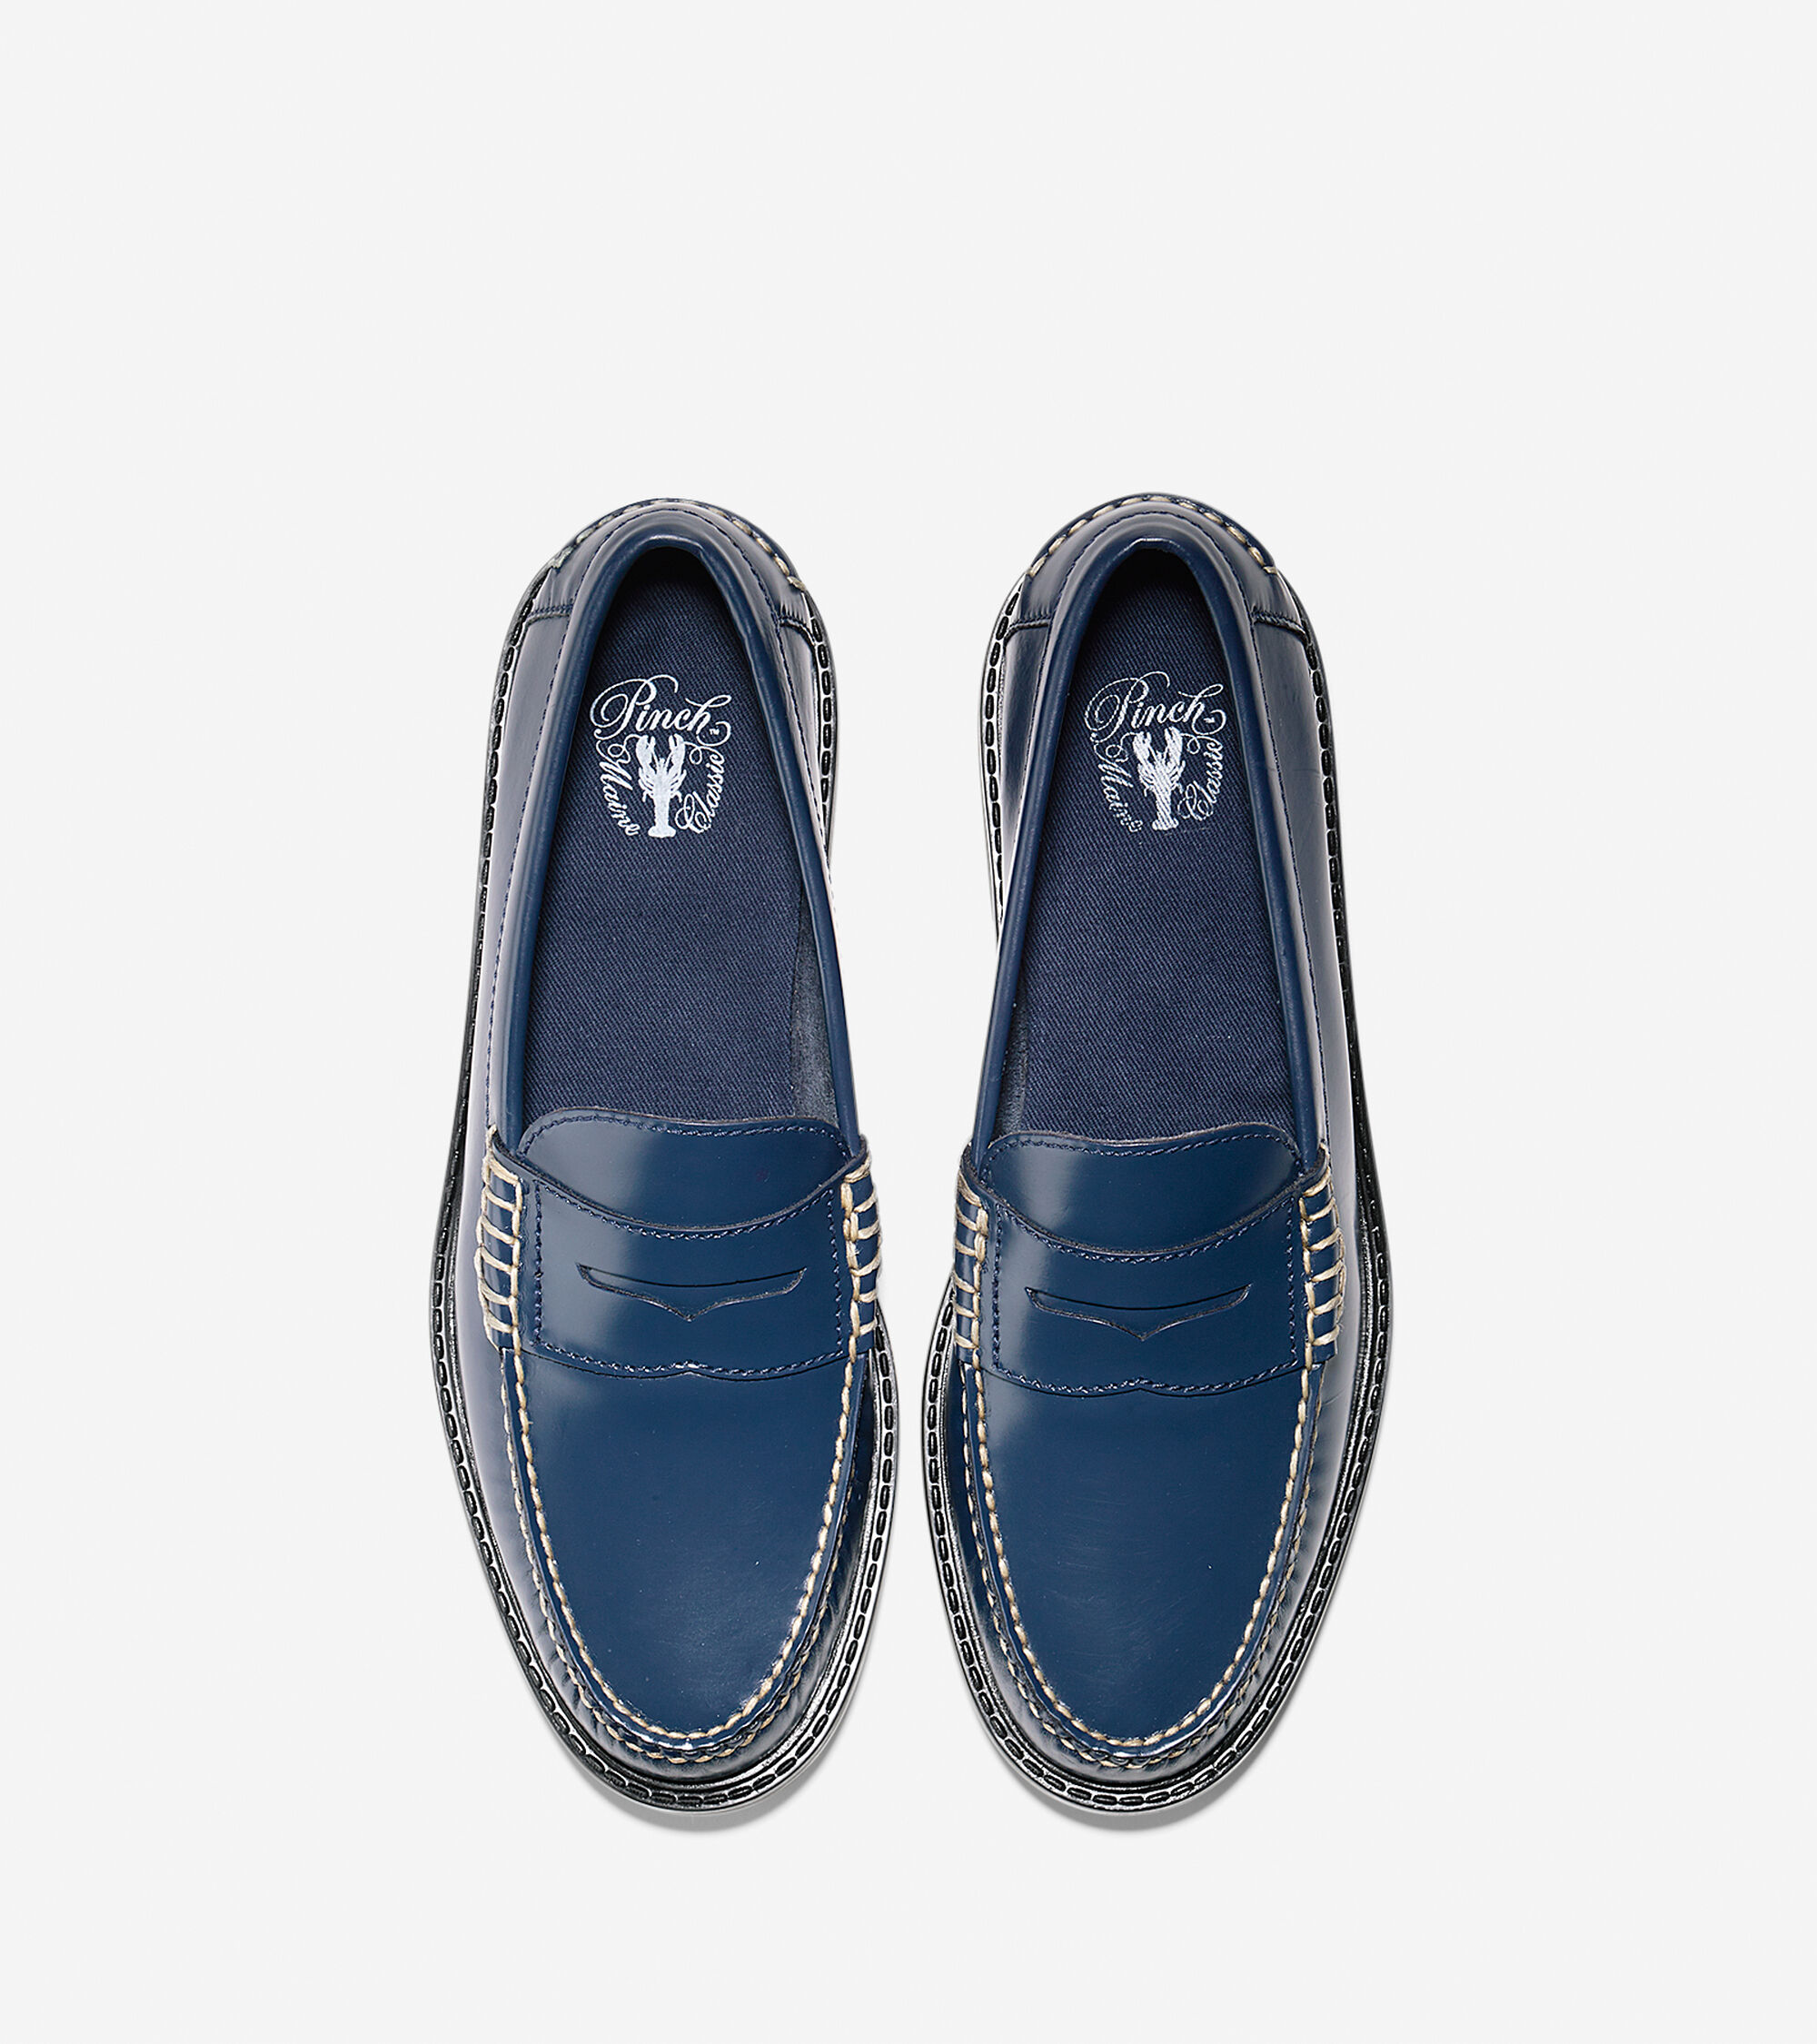 Mens Pinch Campus Penny Loafers in Blazer Blue